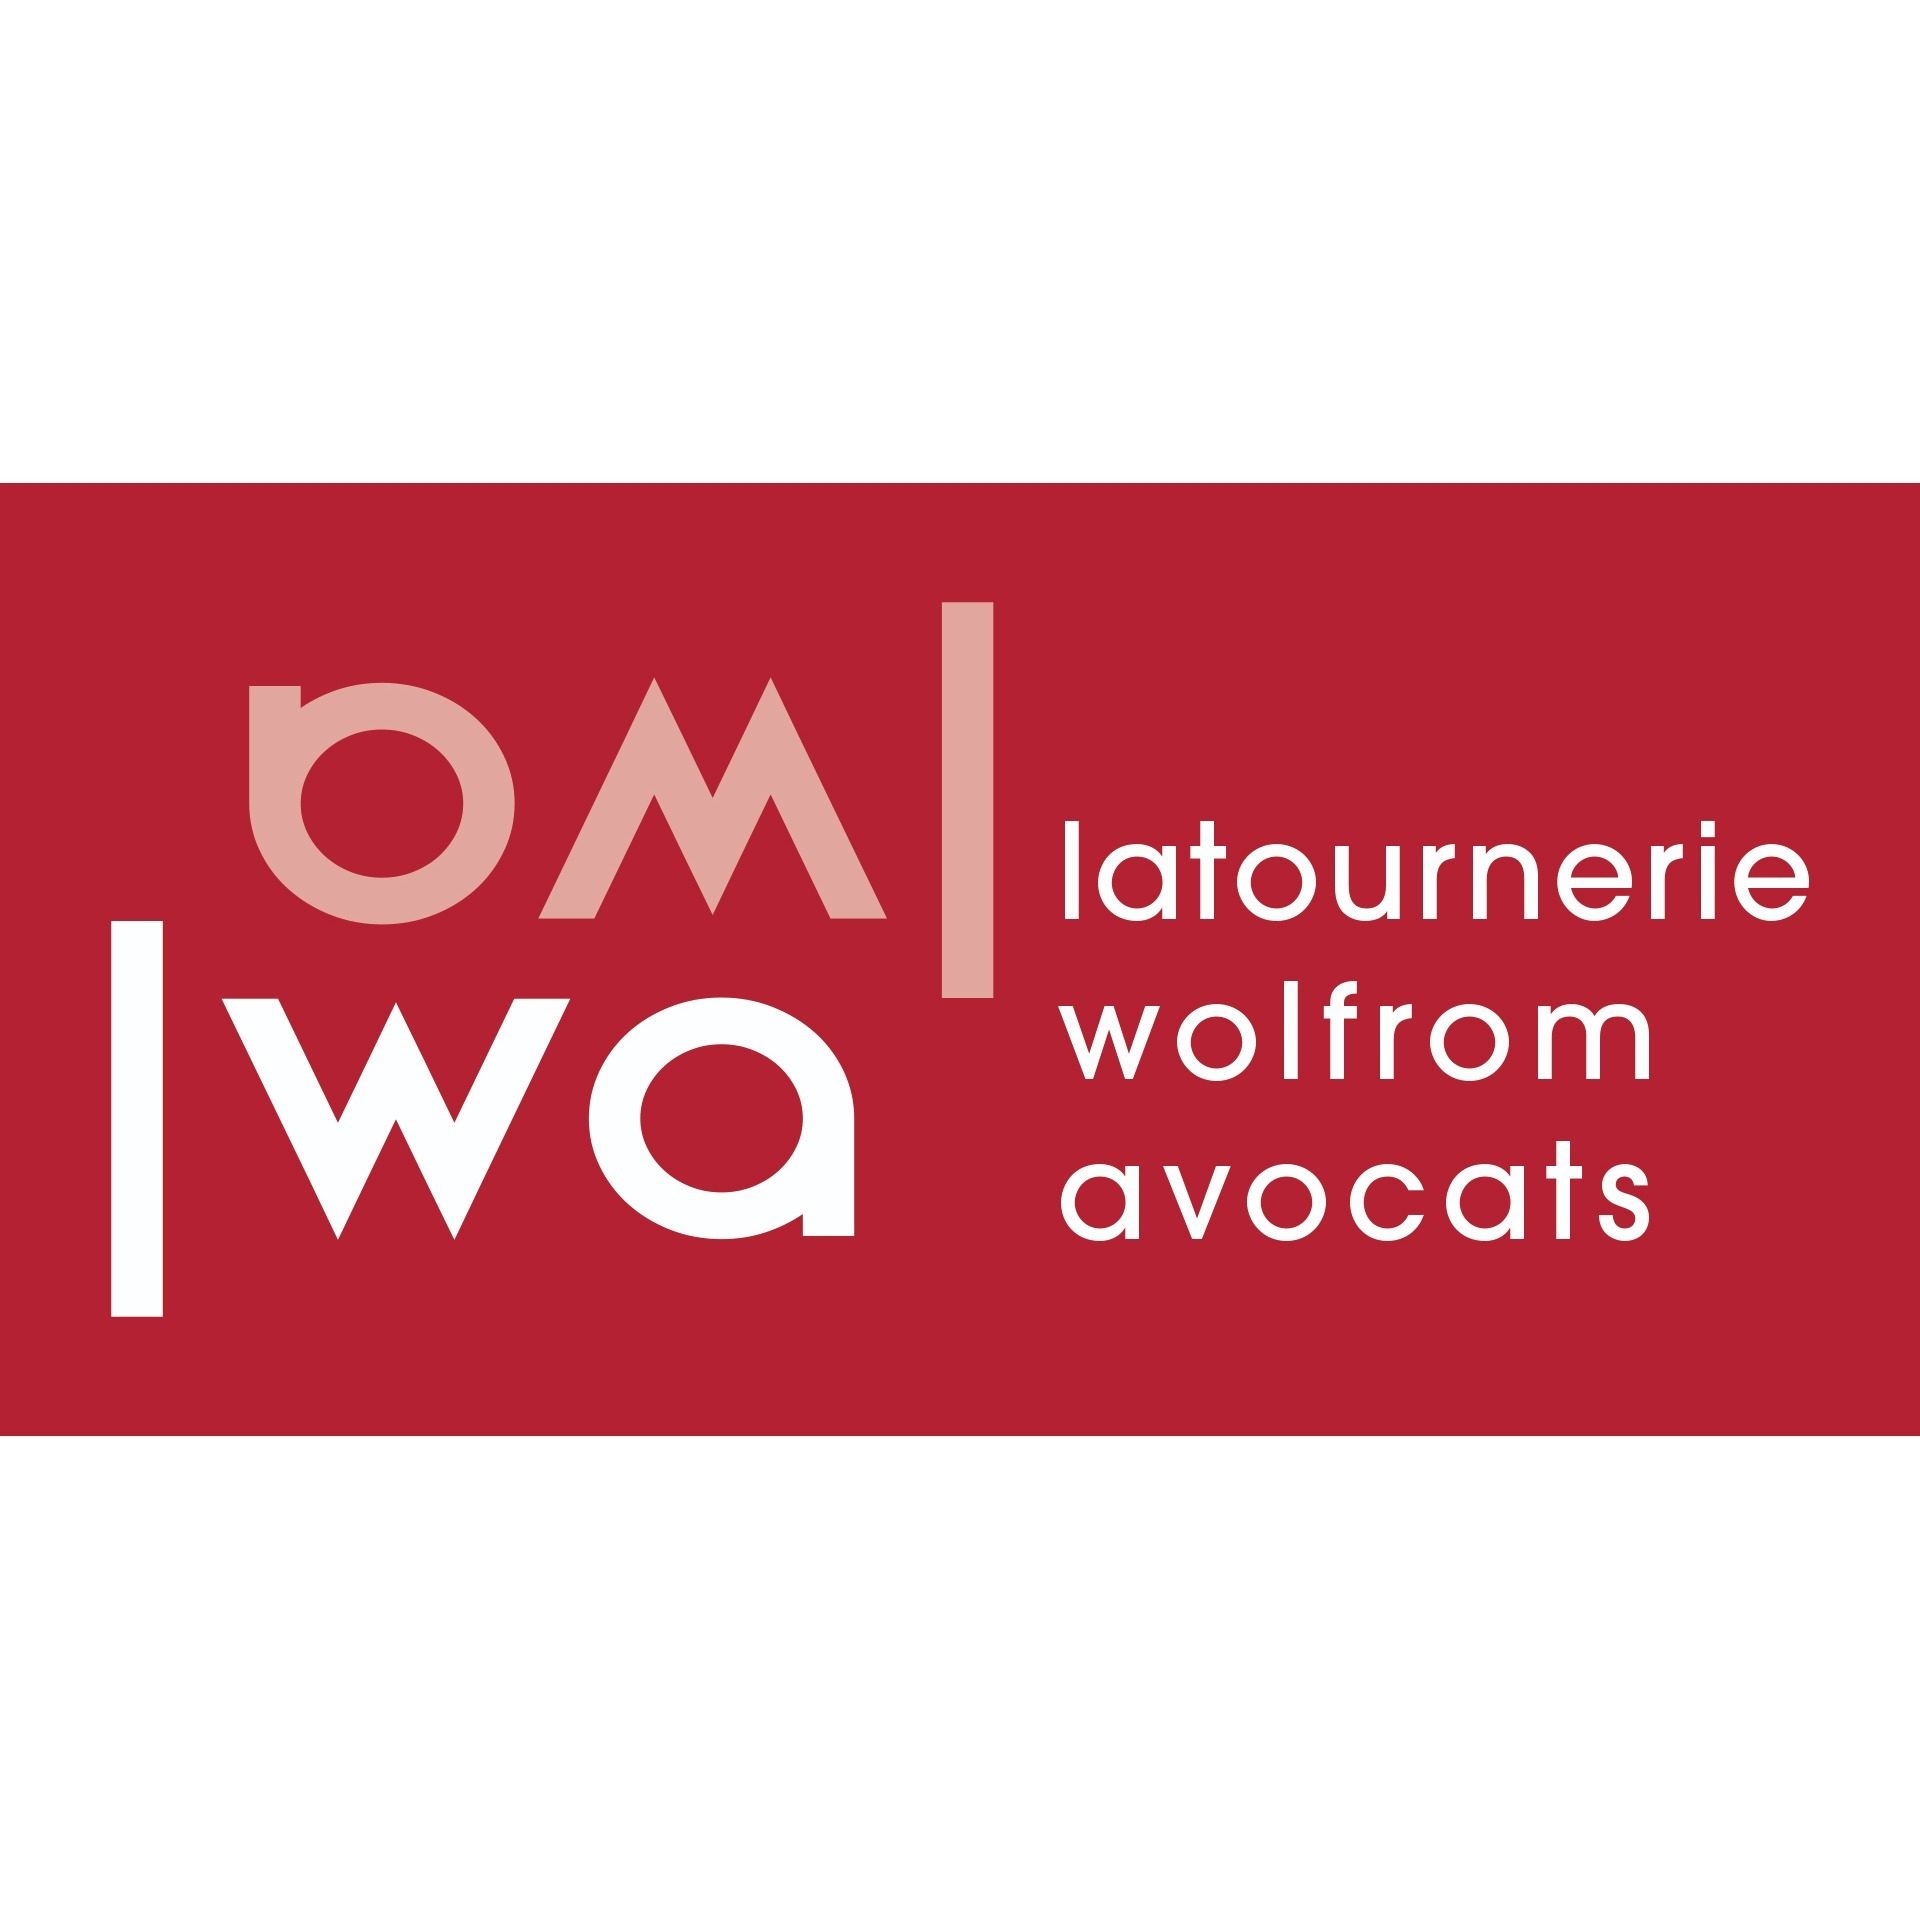 the Latournerie Wolfrom Avocats logo.